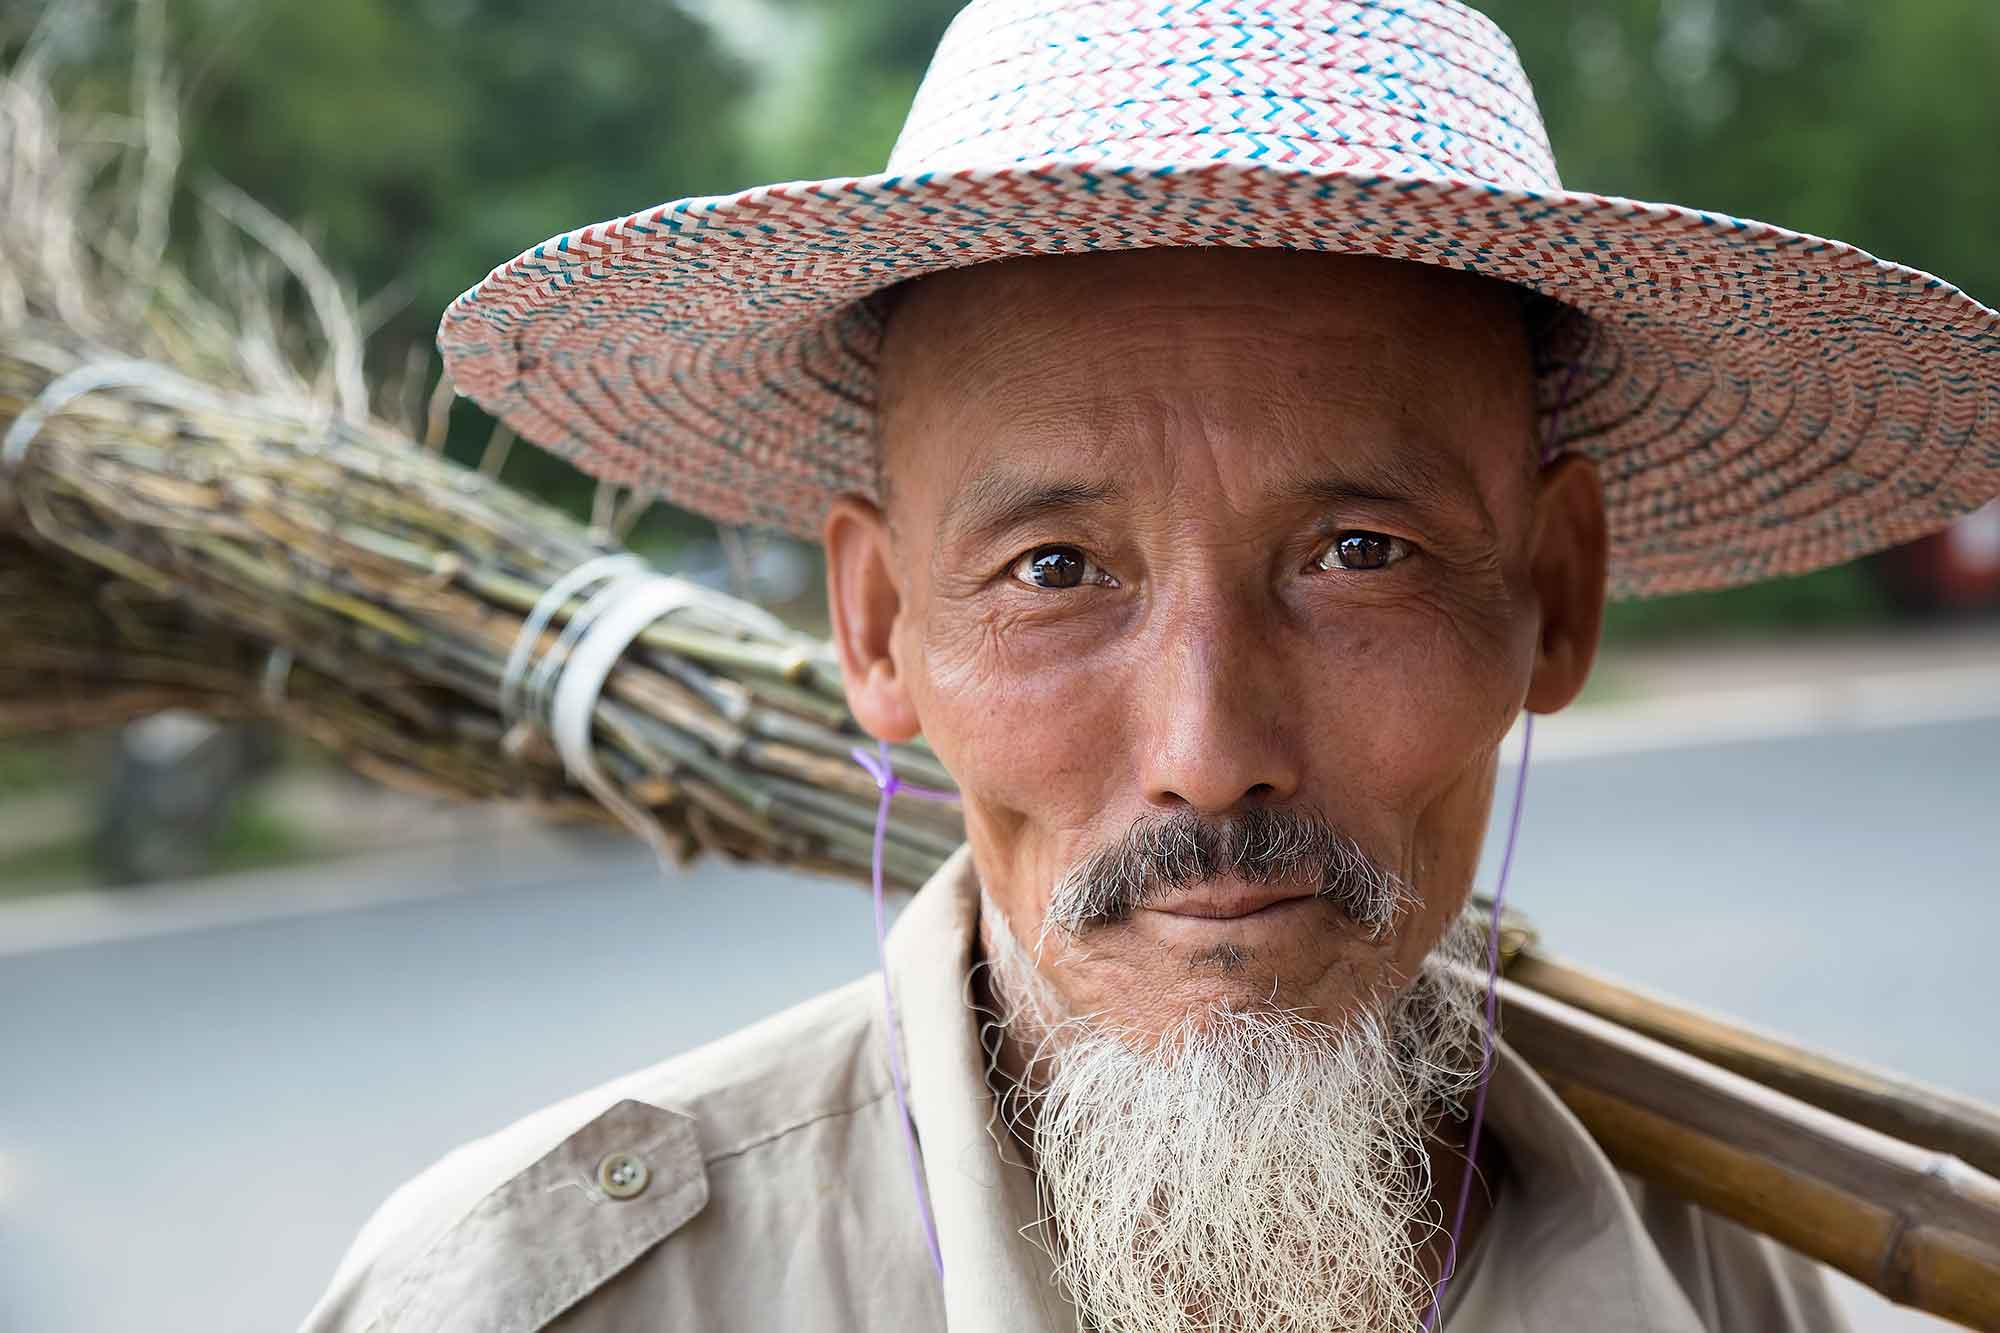 Luobiao is a destination not many tourists (neither Western nor Chinese) come to very often. Therefore it was one of those great travel experiences where we got to intimately interact with its local people. © ULLI MAIER & NISA MAIER